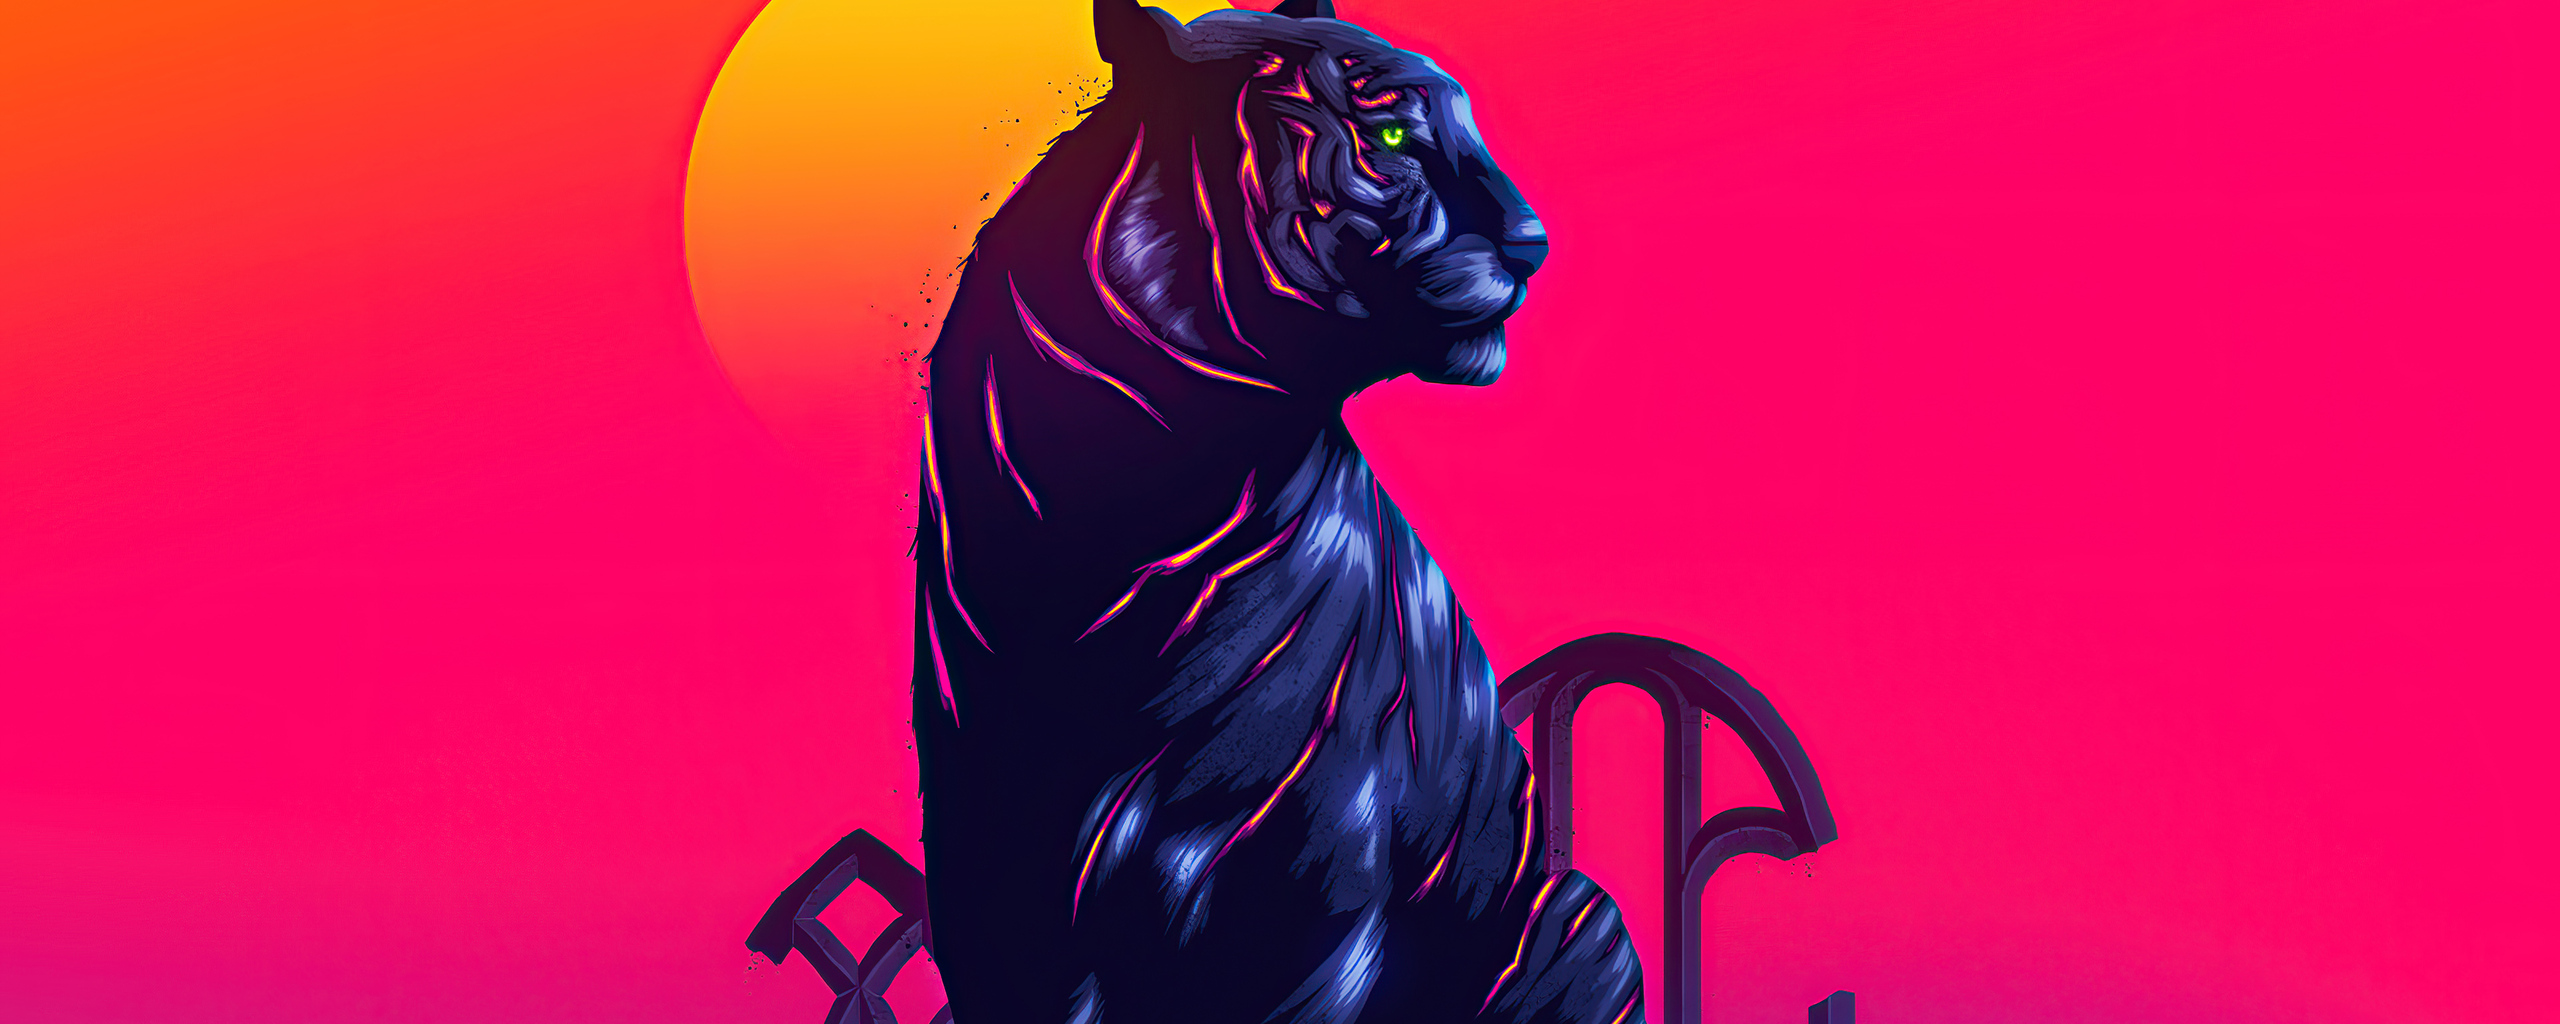 2560x1024 Tiger Neon 4k 2560x1024 Resolution Hd 4k Wallpapers Images Backgrounds Photos And Pictures